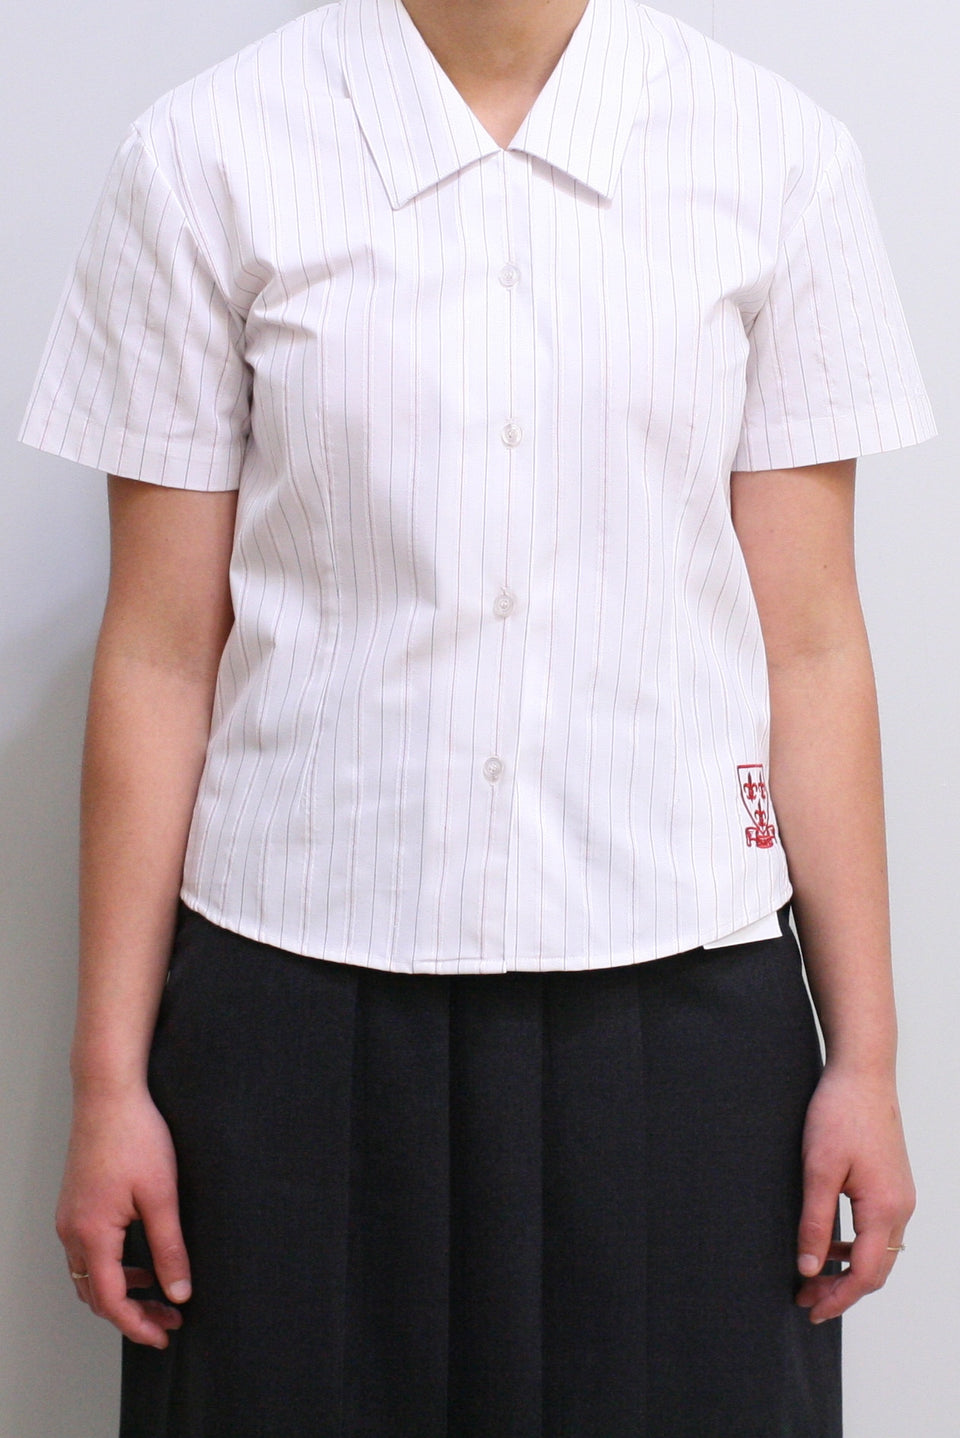 Girls Junior Blouse